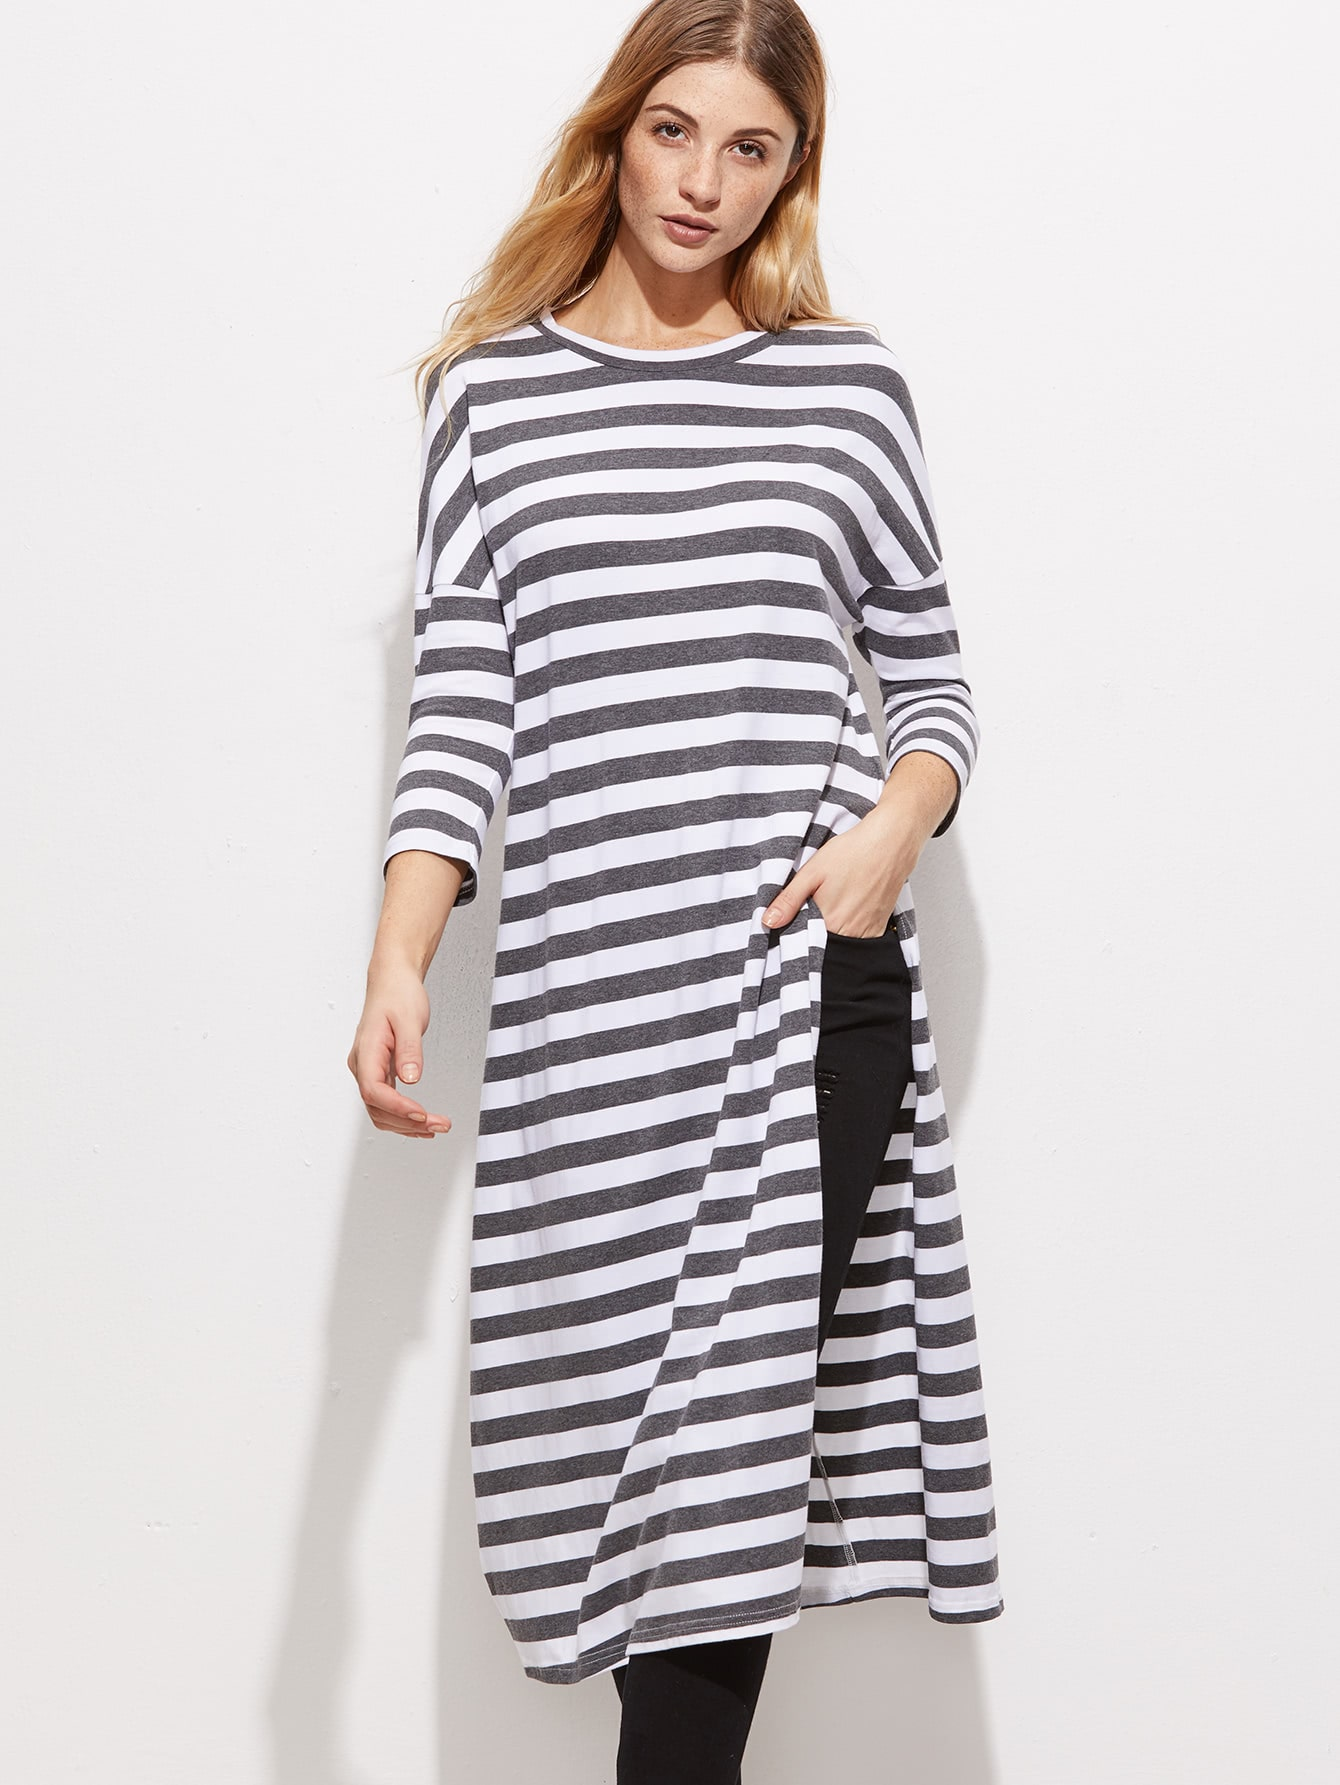 White And Grey Striped Keyhole Back Split Longline T-ShirtWhite And Grey Striped Keyhole Back Split Longline T-Shirt<br><br>color: White<br>size: L,M,S,XS